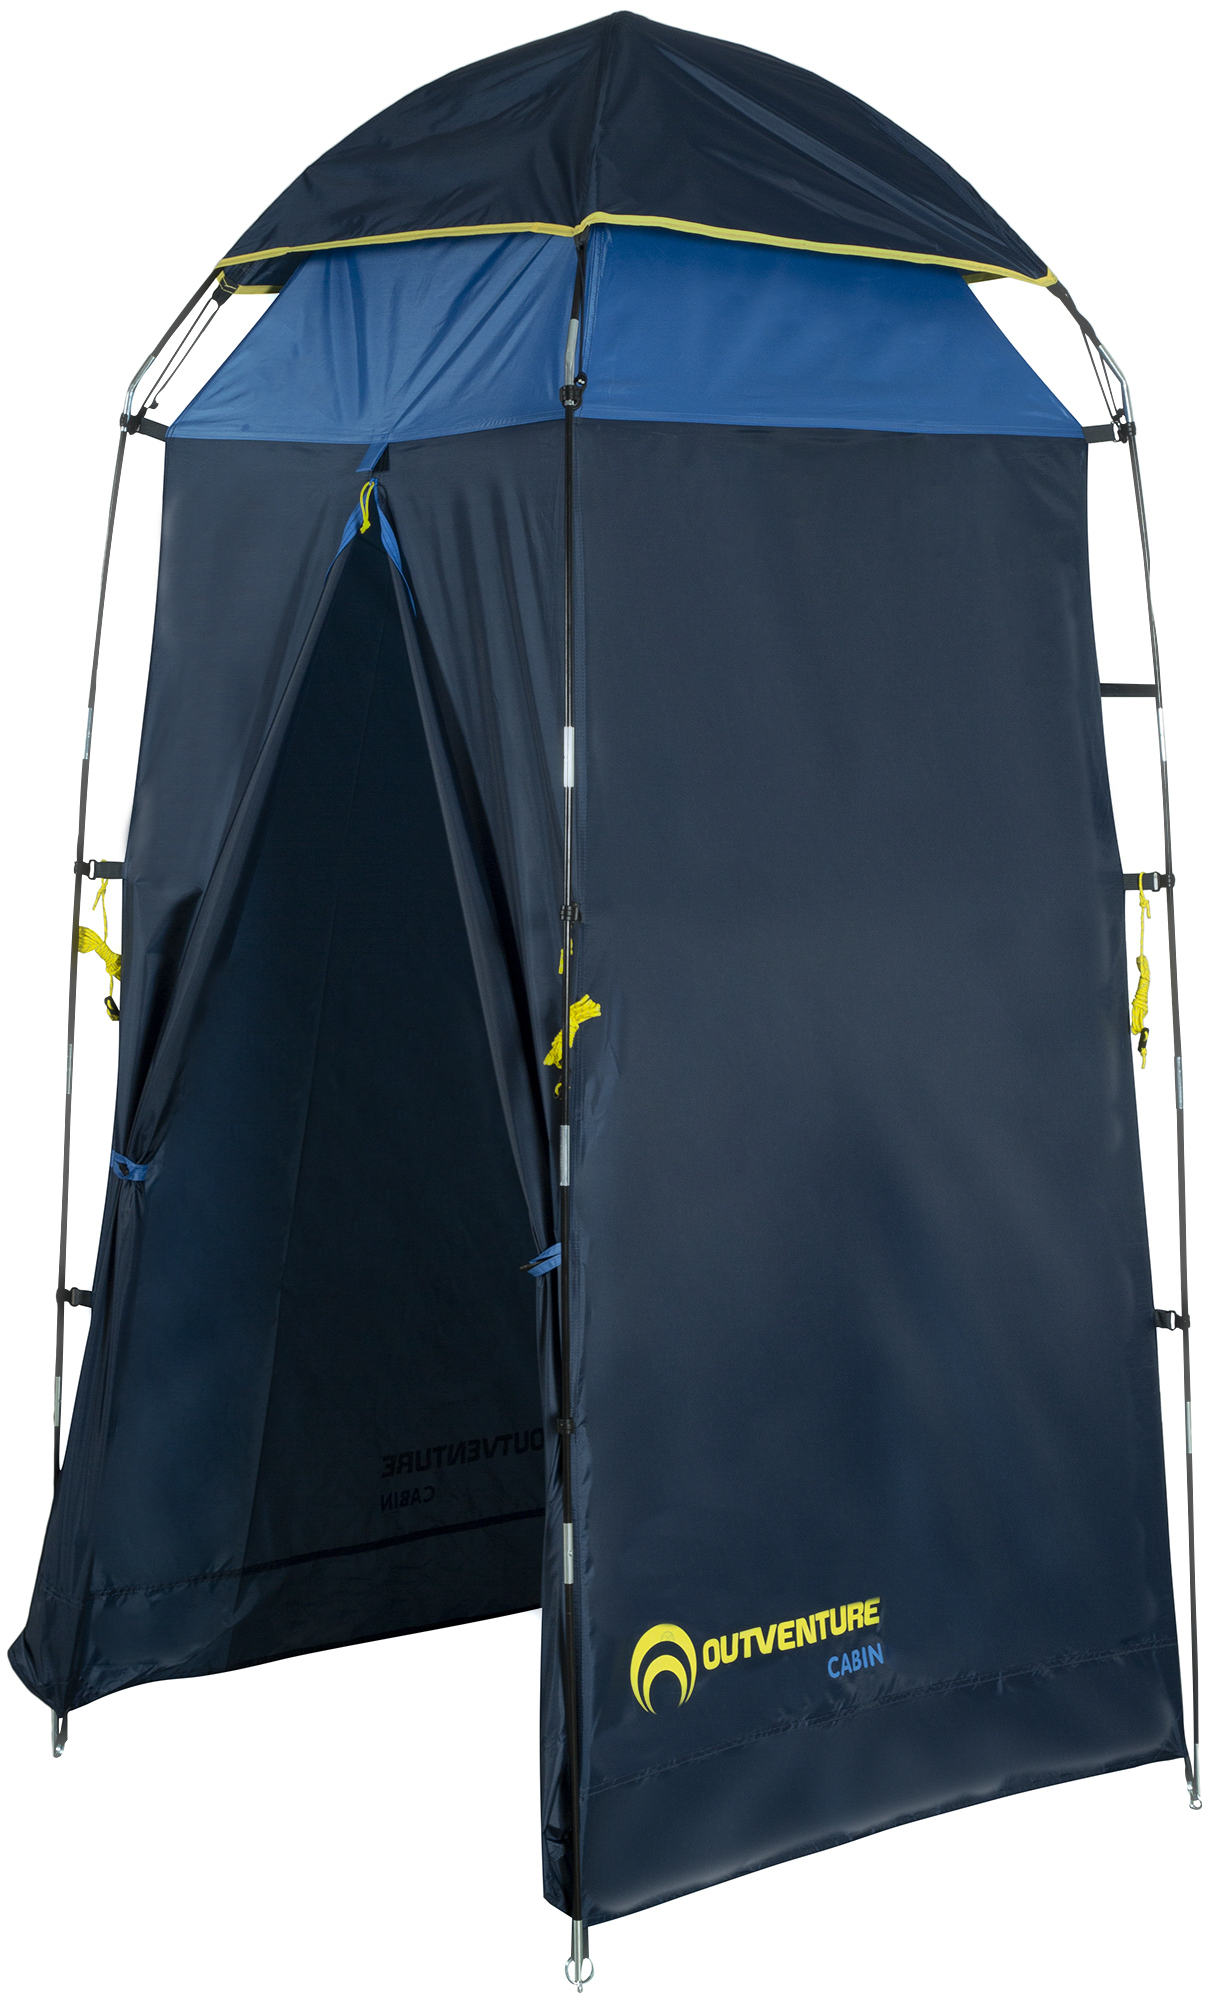 Outventure Тент Cabin sanitary tent